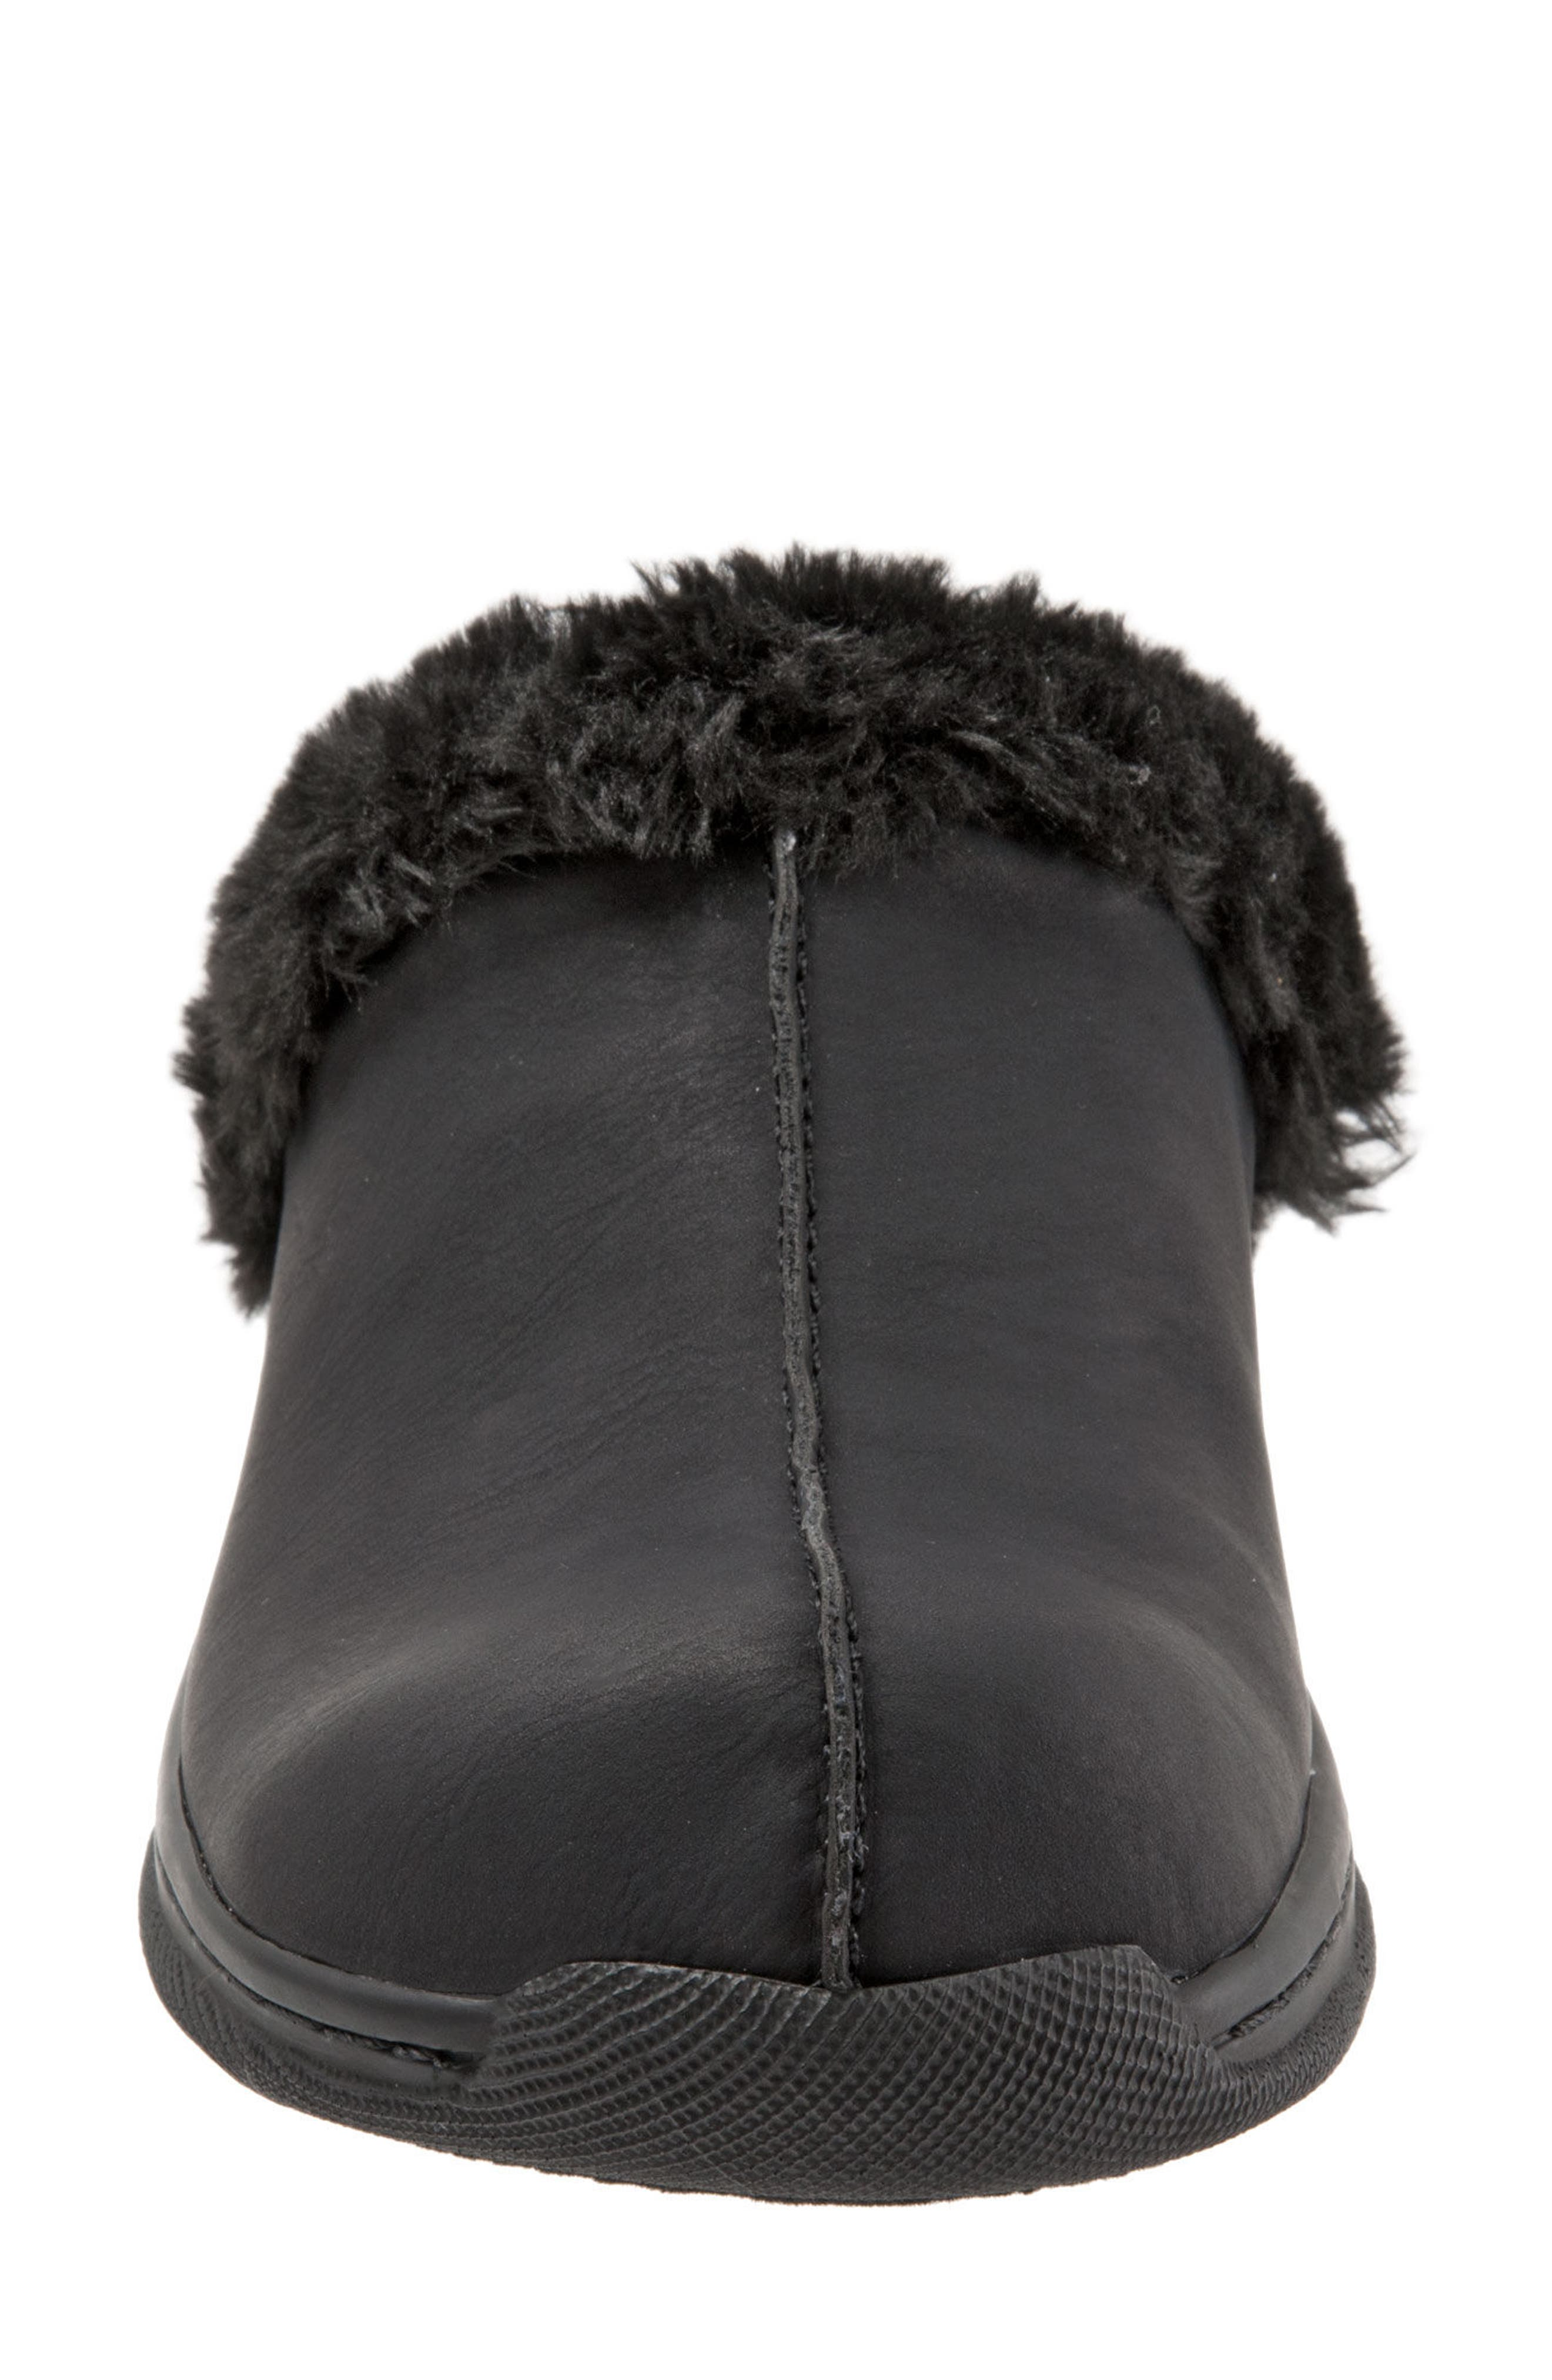 Abigail Clog with Faux Shearling Trim,                             Alternate thumbnail 4, color,                             004